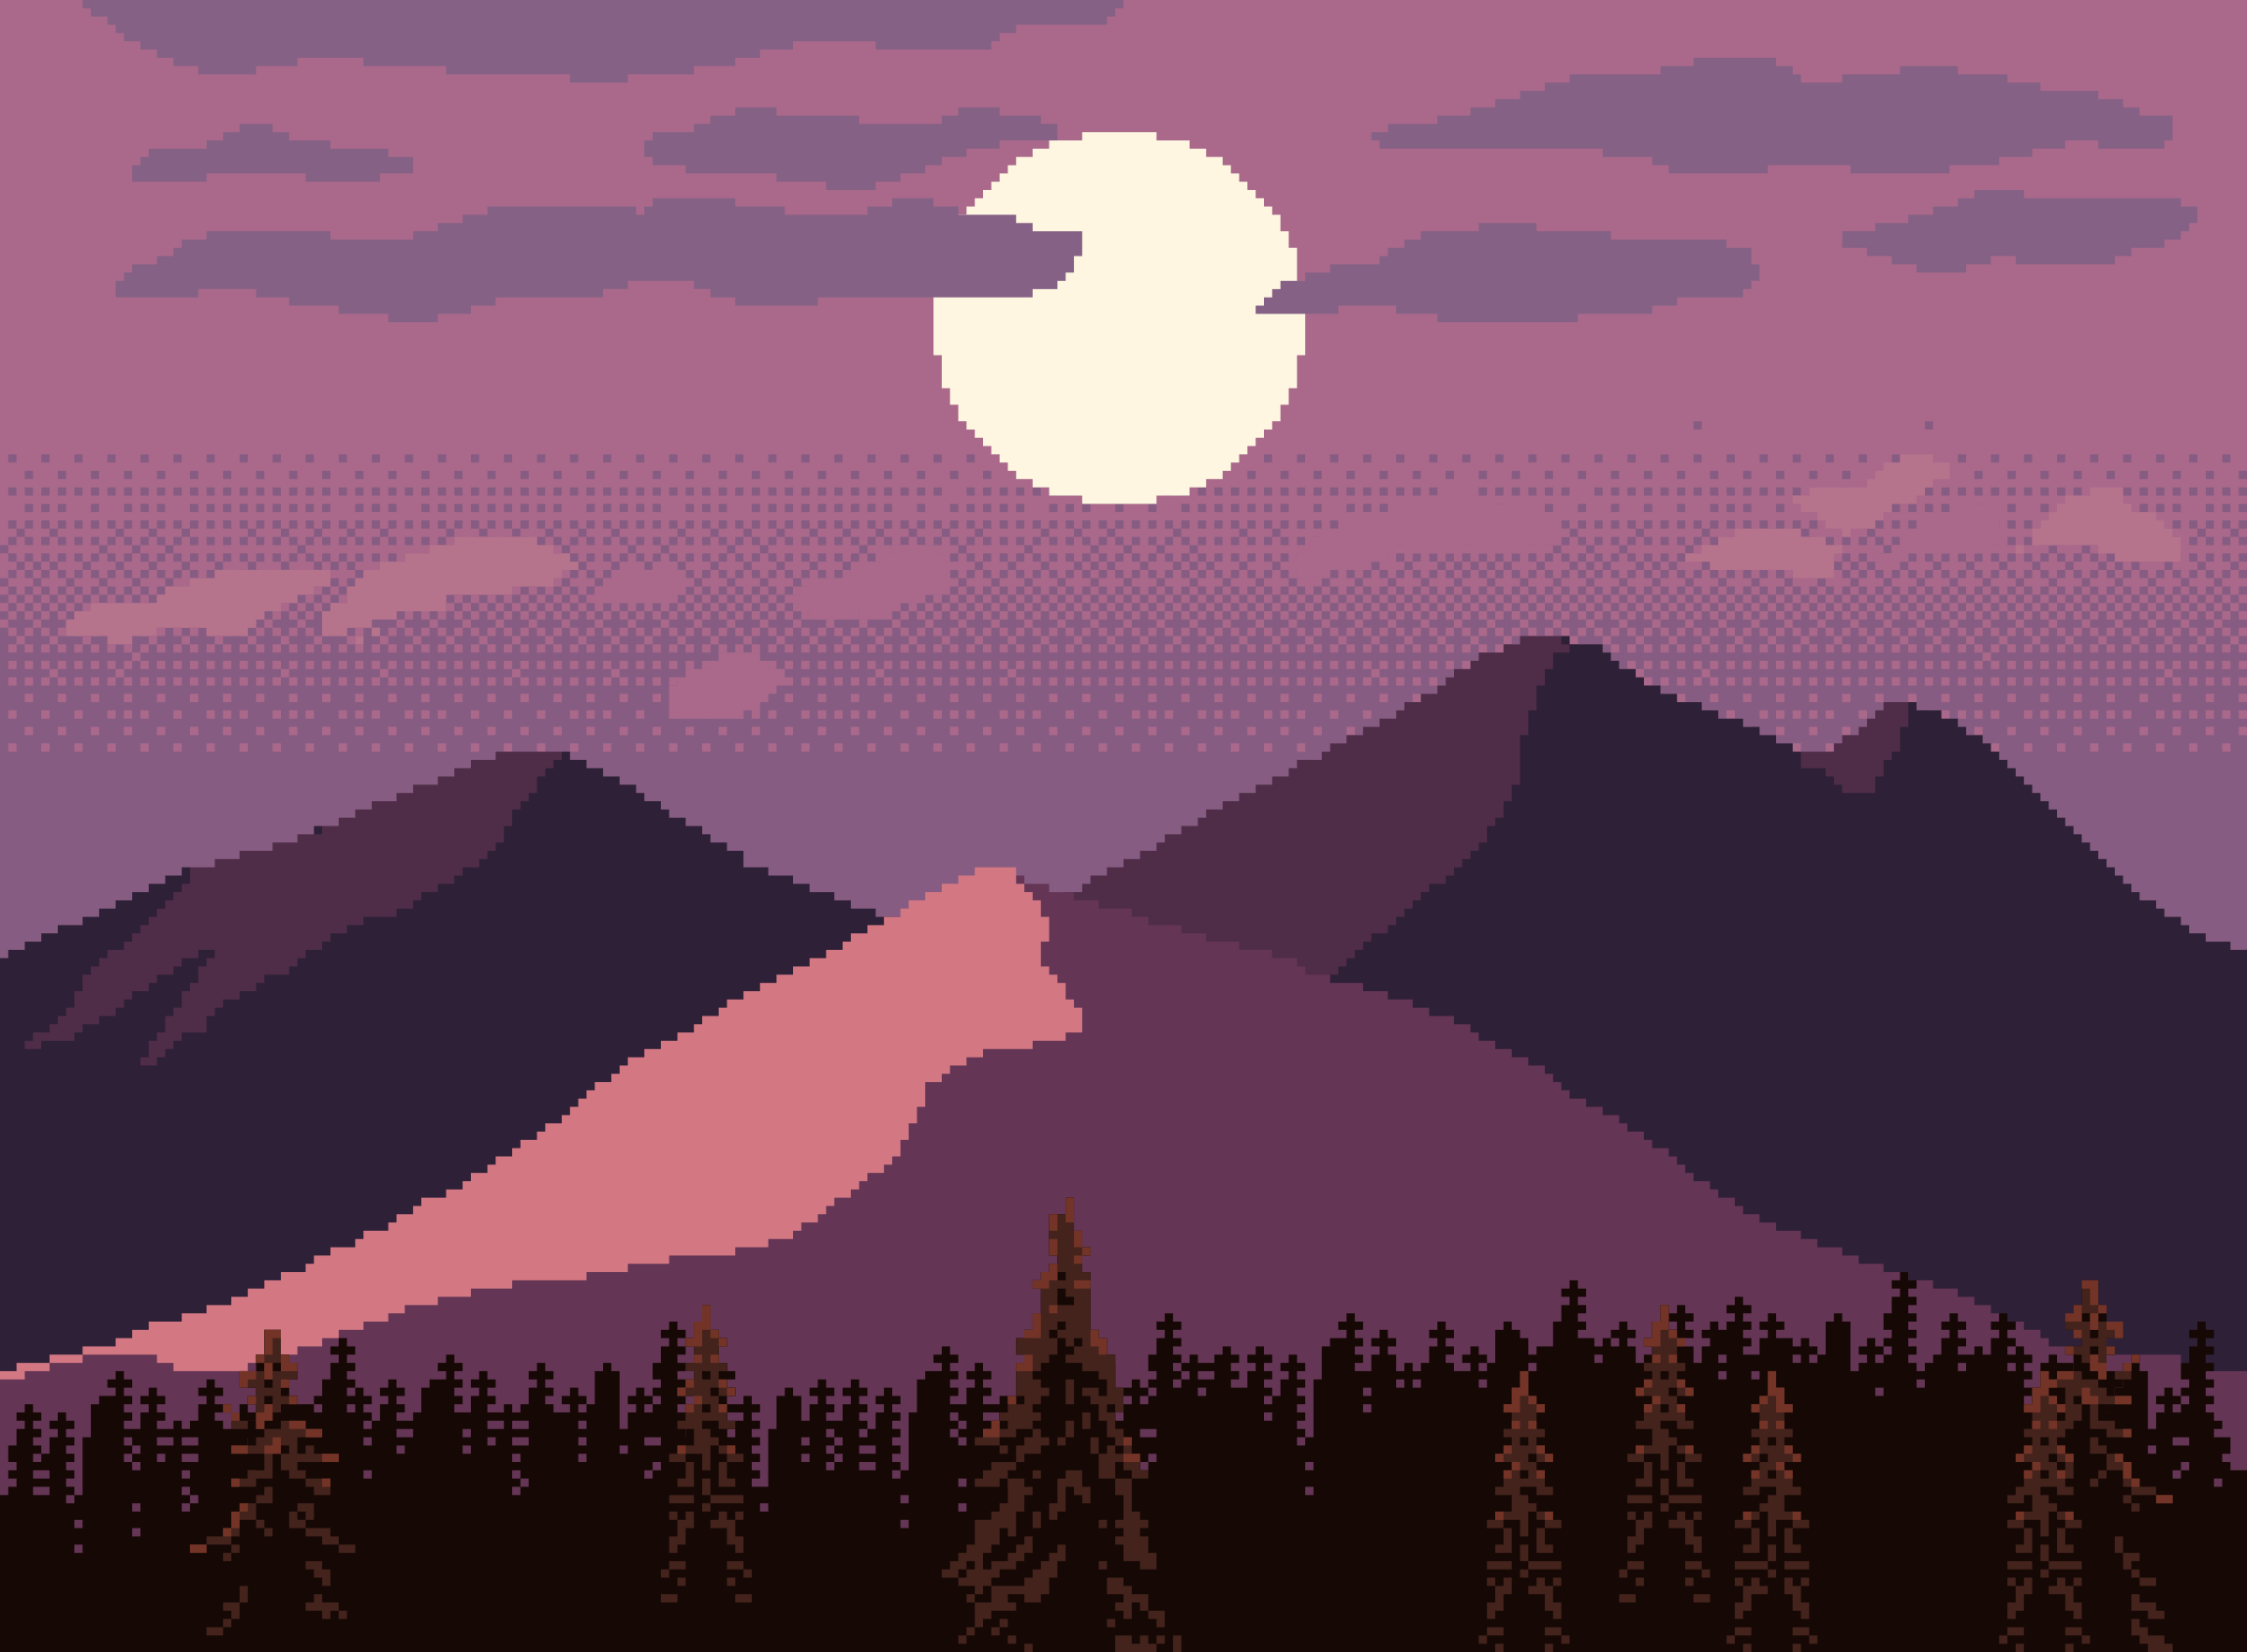 pixel mountains by Lazur URH